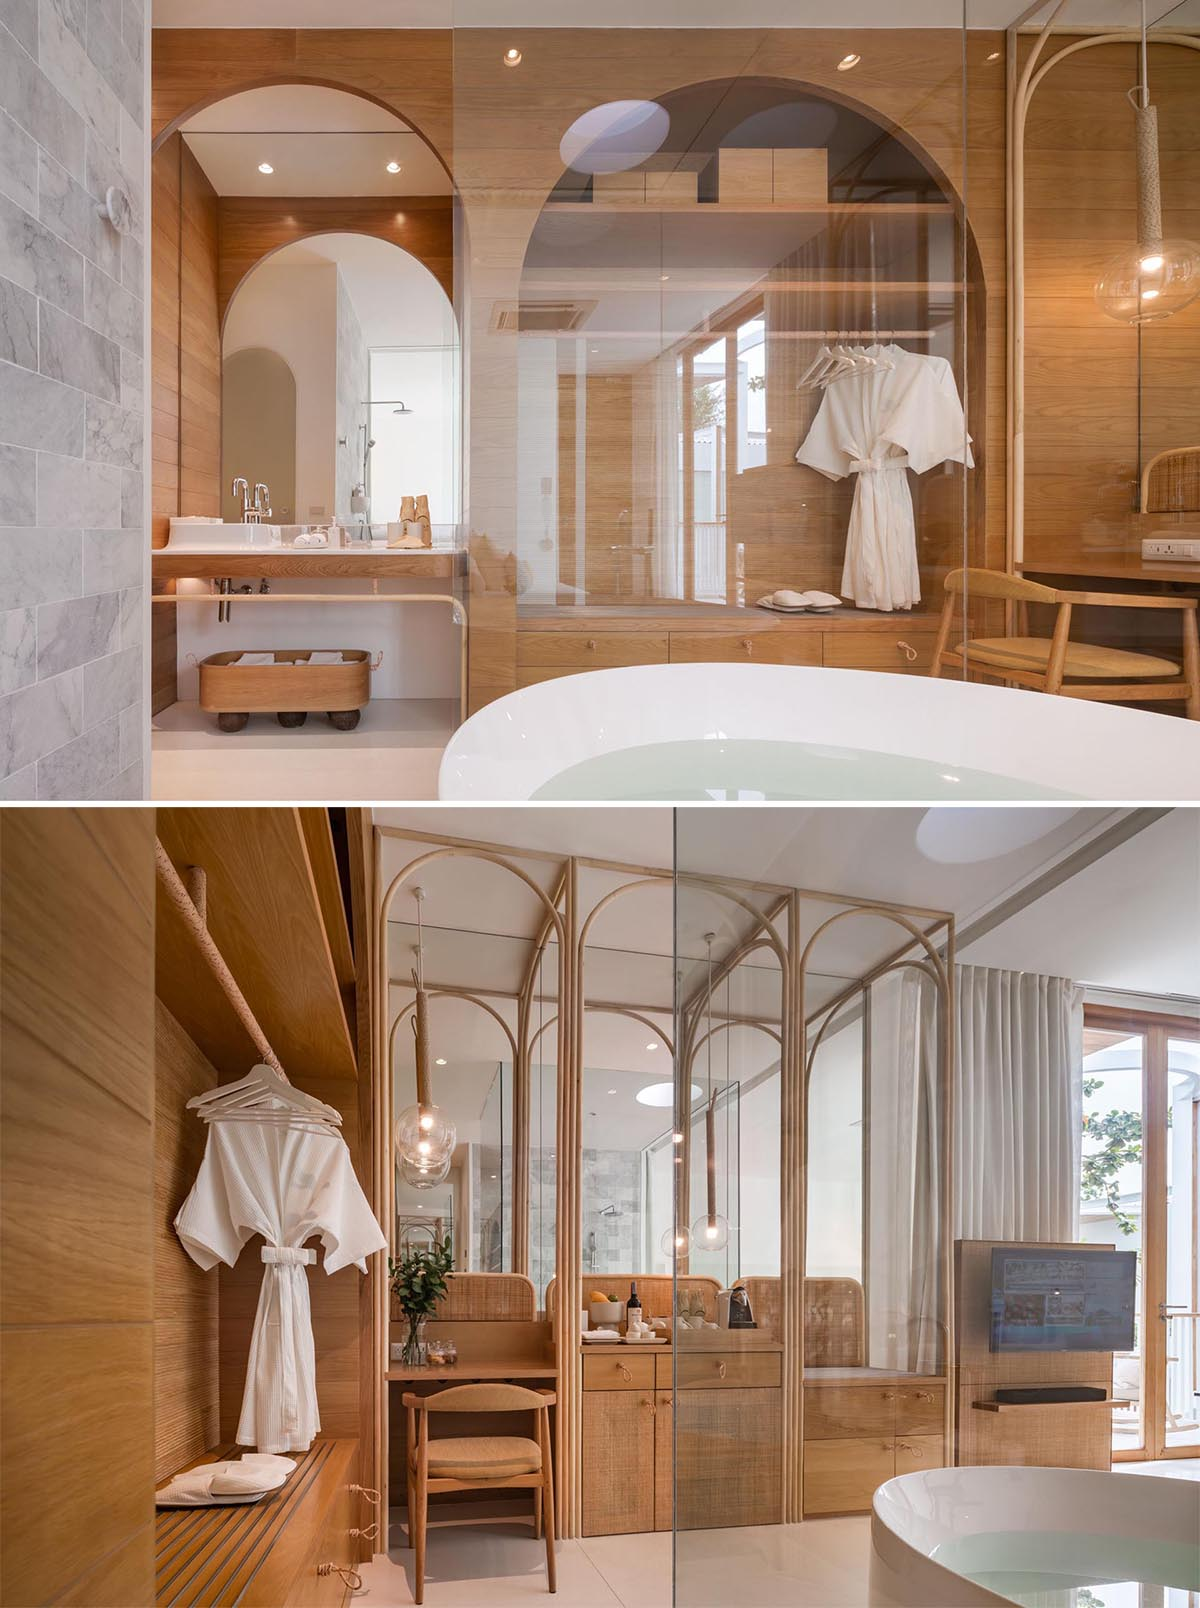 A hotel bathroom with open bathtub and wood cabinetry.